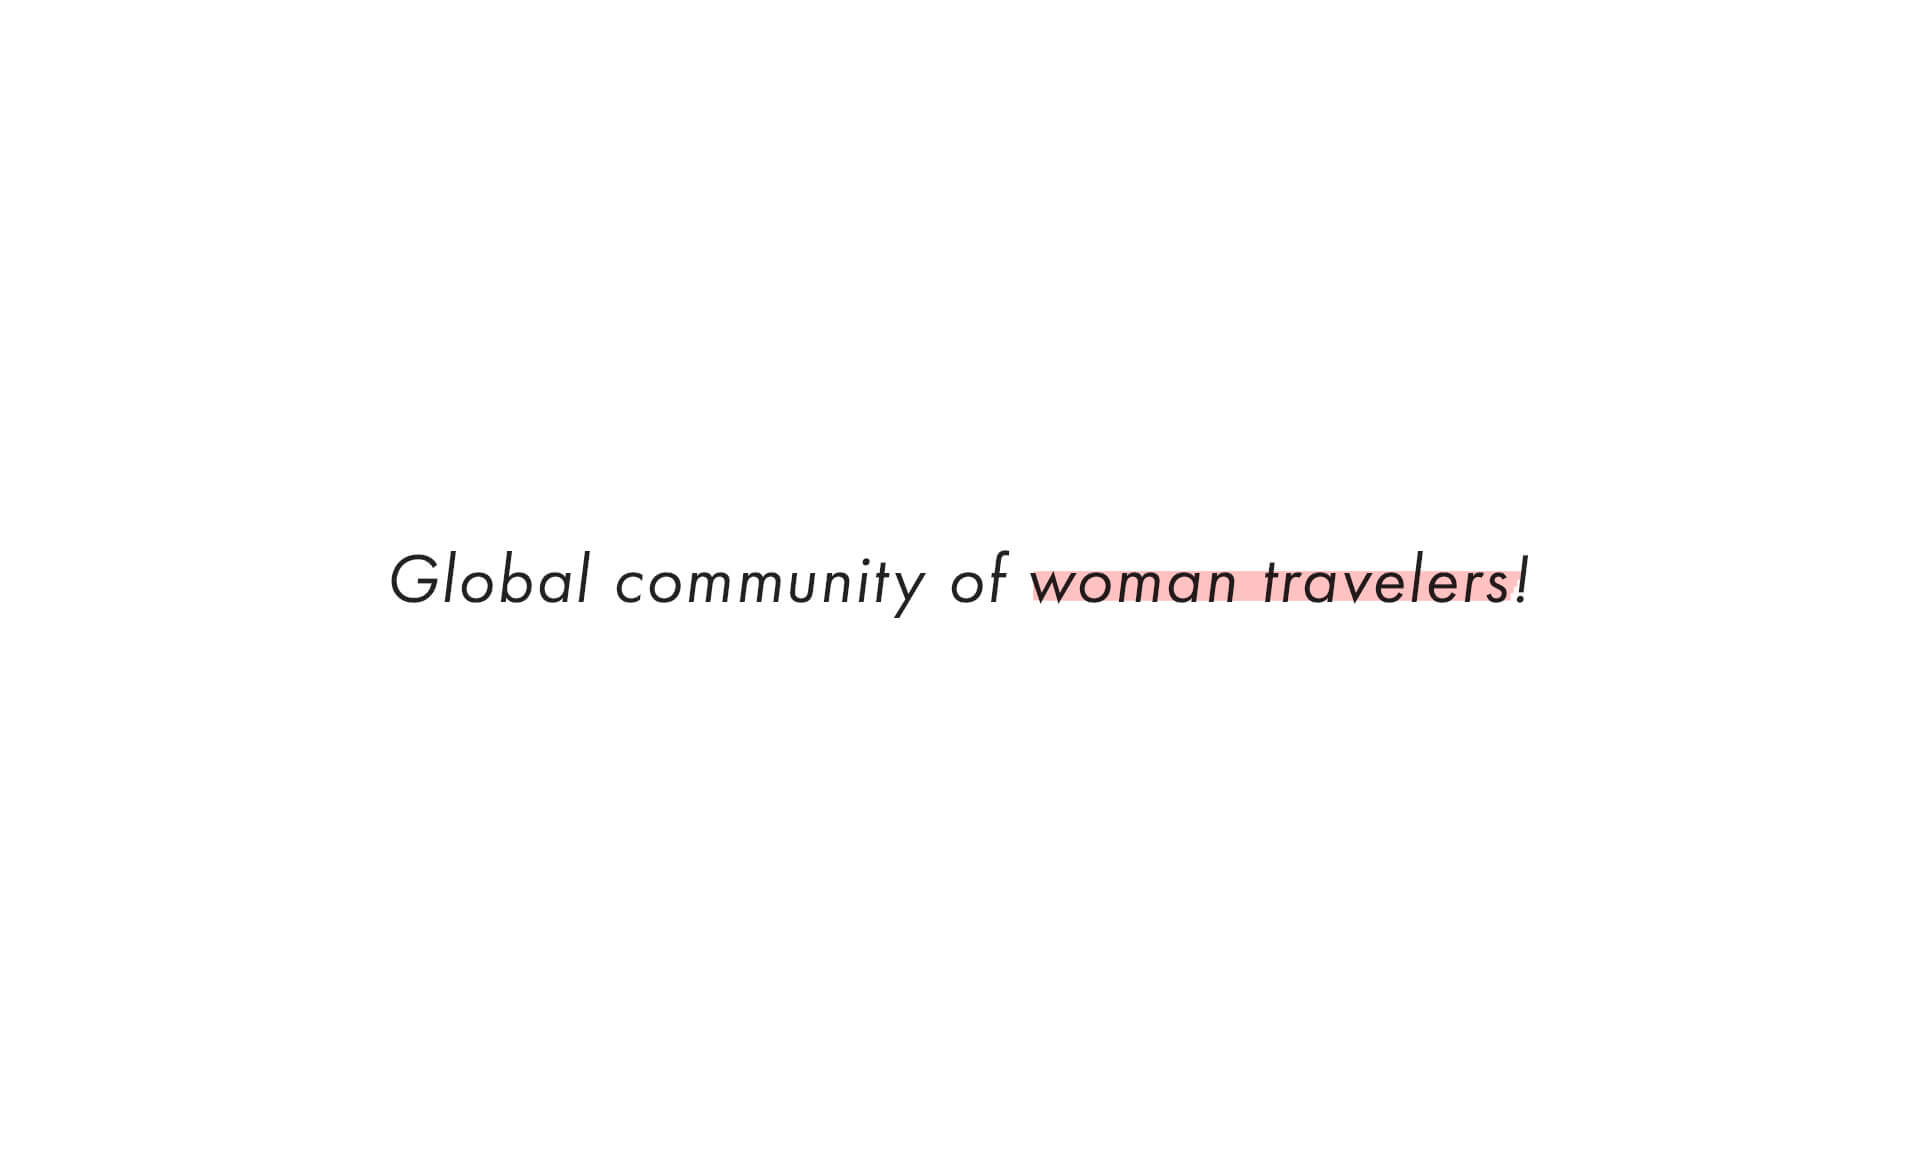 Global community of woman travelers!